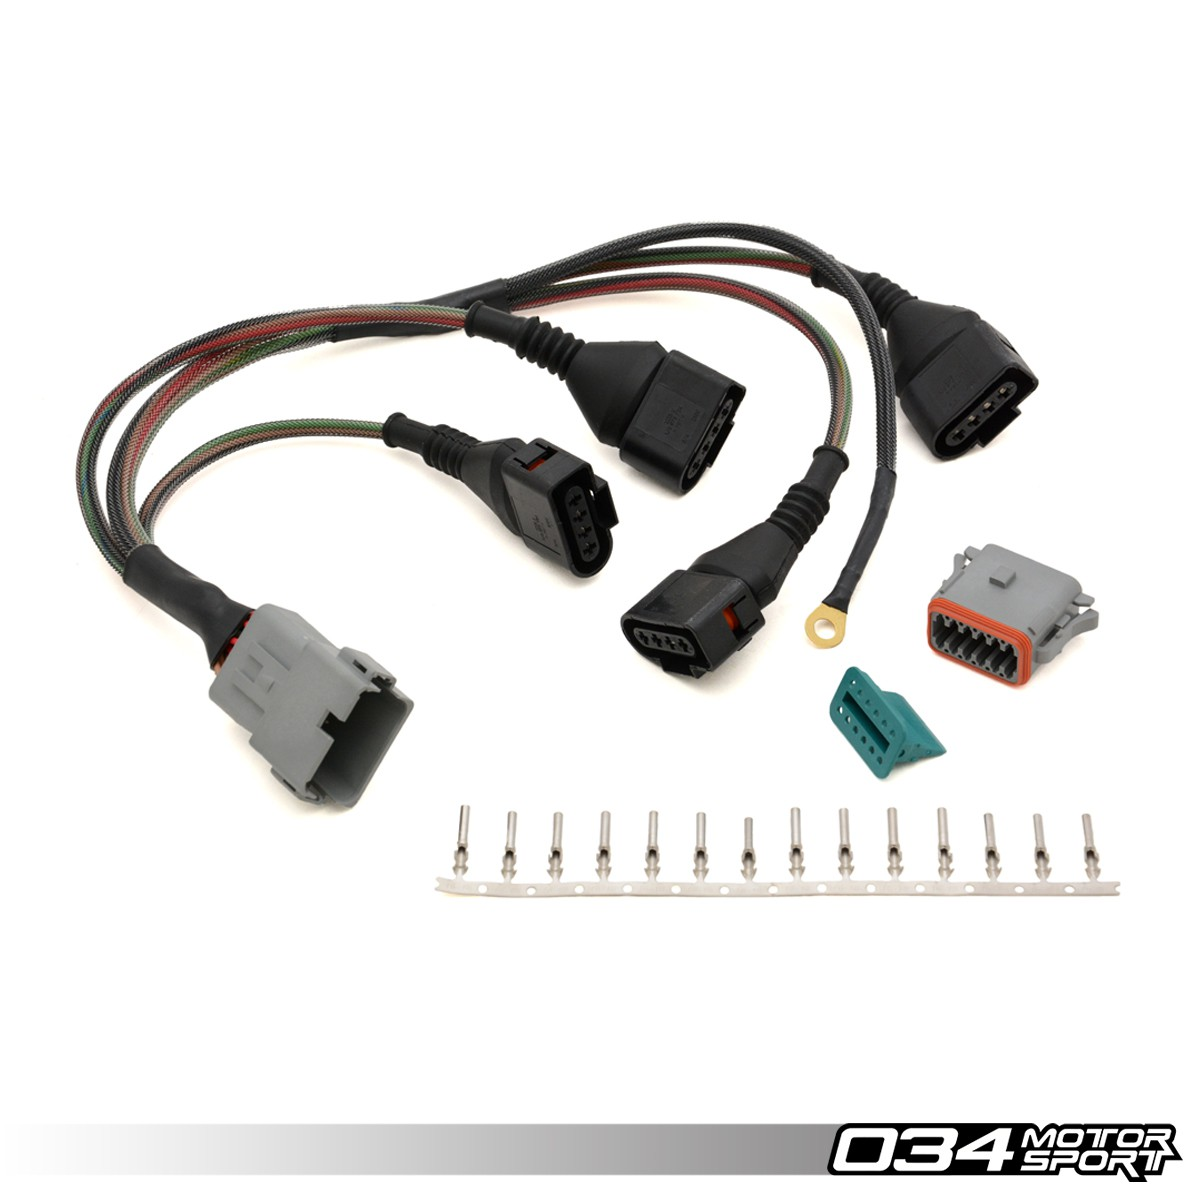 repair update harness audi volkswagen 18t with 4 wire coils 034motorsport 034 701 0004 2 repair update harness, audi volkswagen 1 8t with 4 wire coils  at virtualis.co